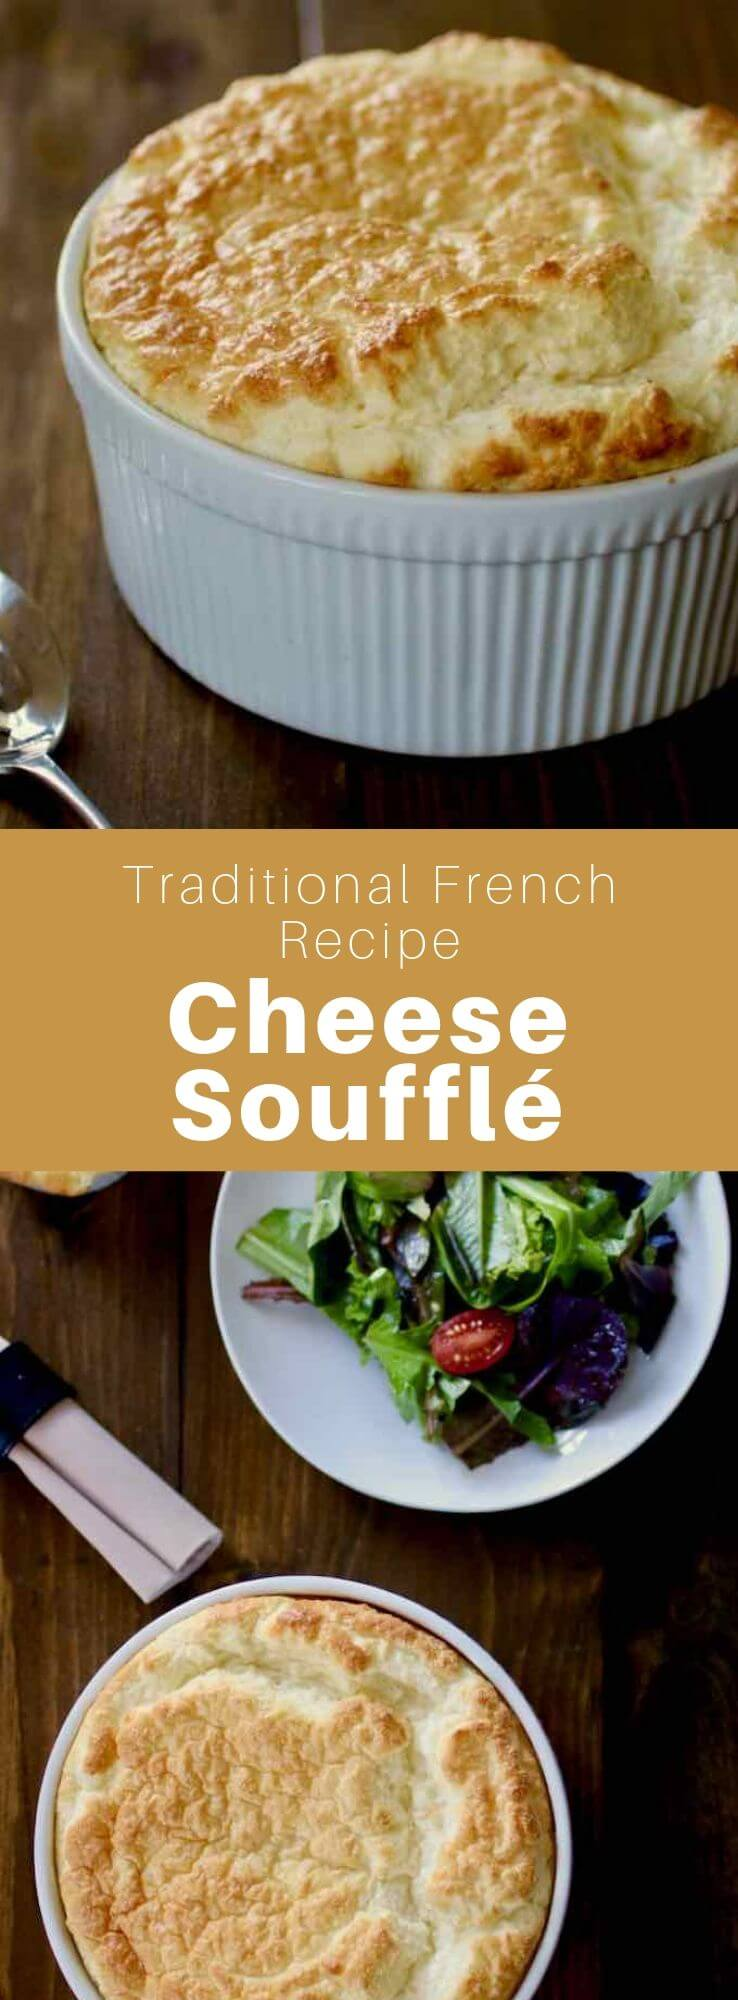 Cheese soufflé is a classic French specialty. It is a type of soufflé that is prepared with cheese, béchamel and eggs. #French #France #FrenchRecipe #WorldCuisine #196flavors